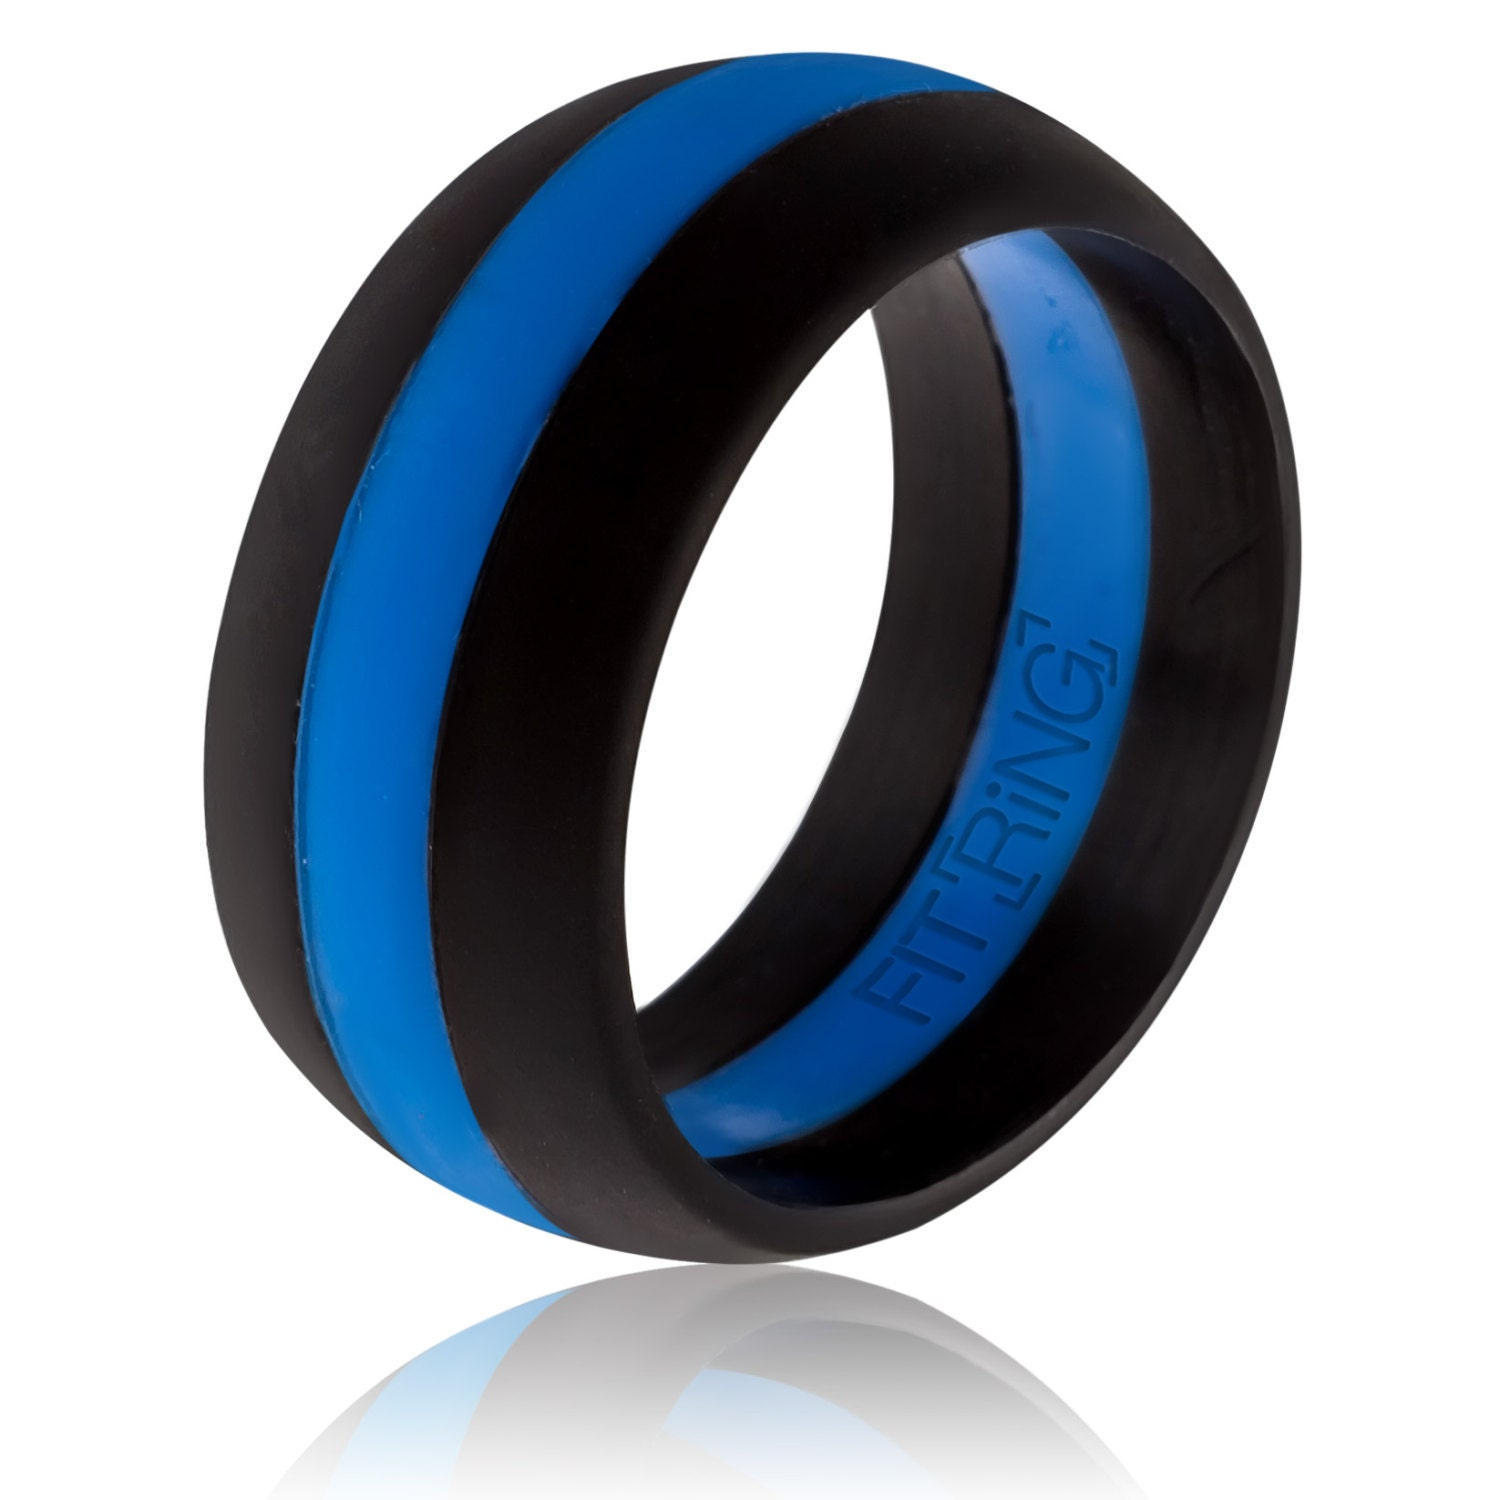 on available rubber by pin rings black designed ring theory knot wedding silicone men for